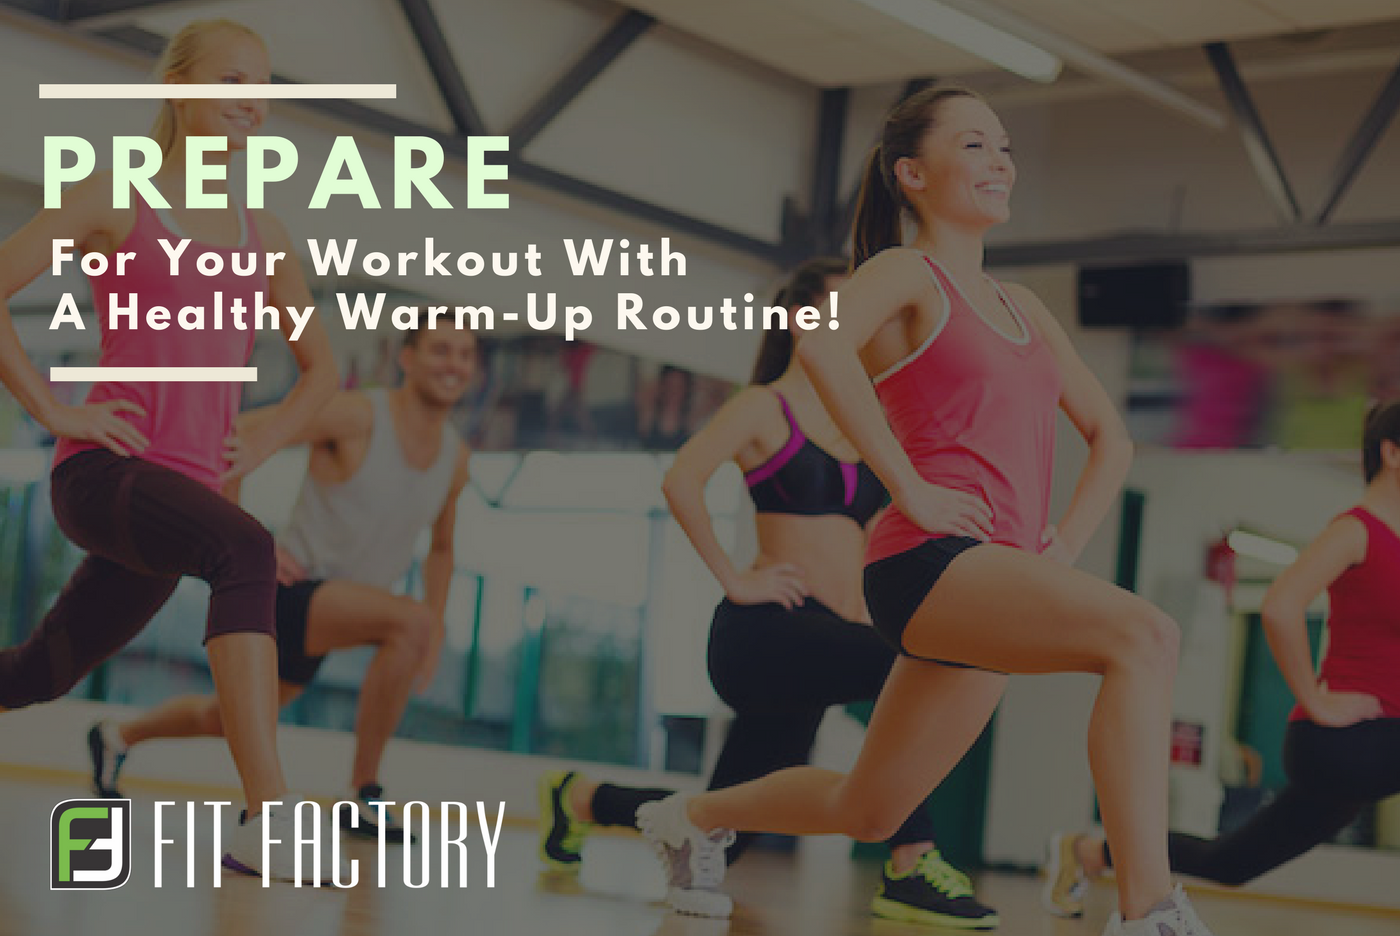 Prepare for Your Workout with a Healthy Warm-Up Routine